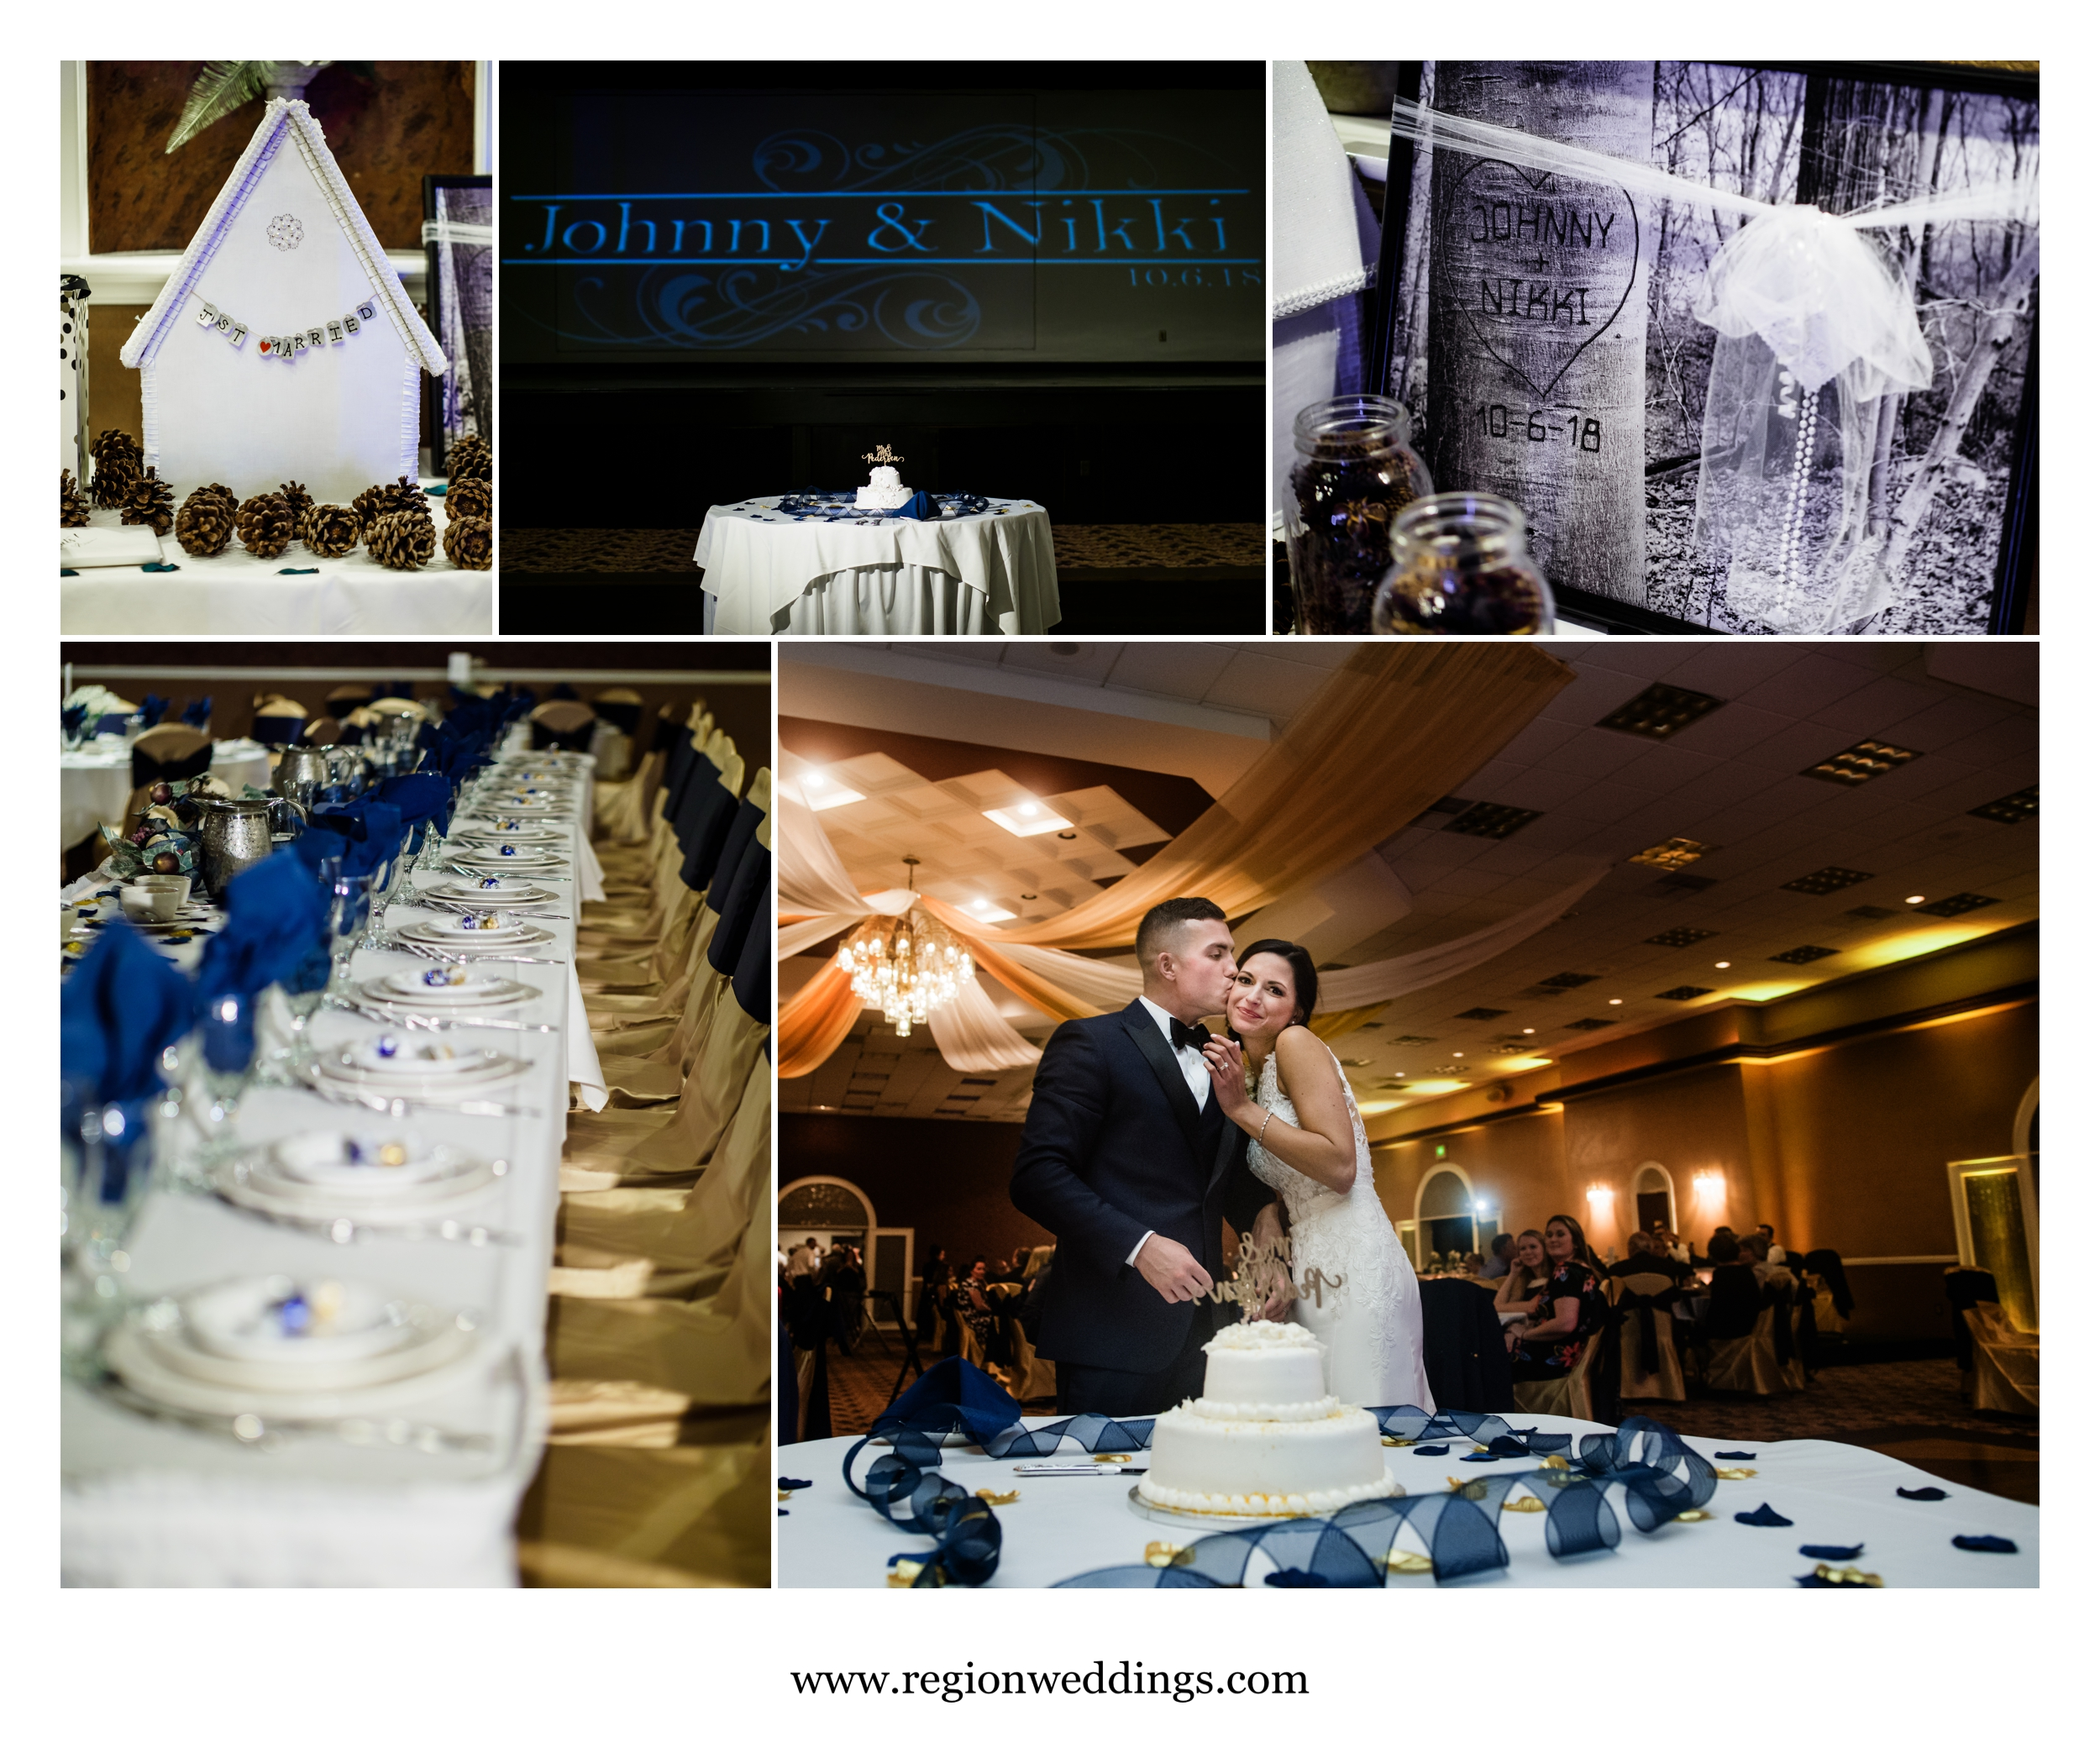 Wedding reception at St. Elijah Event Center.